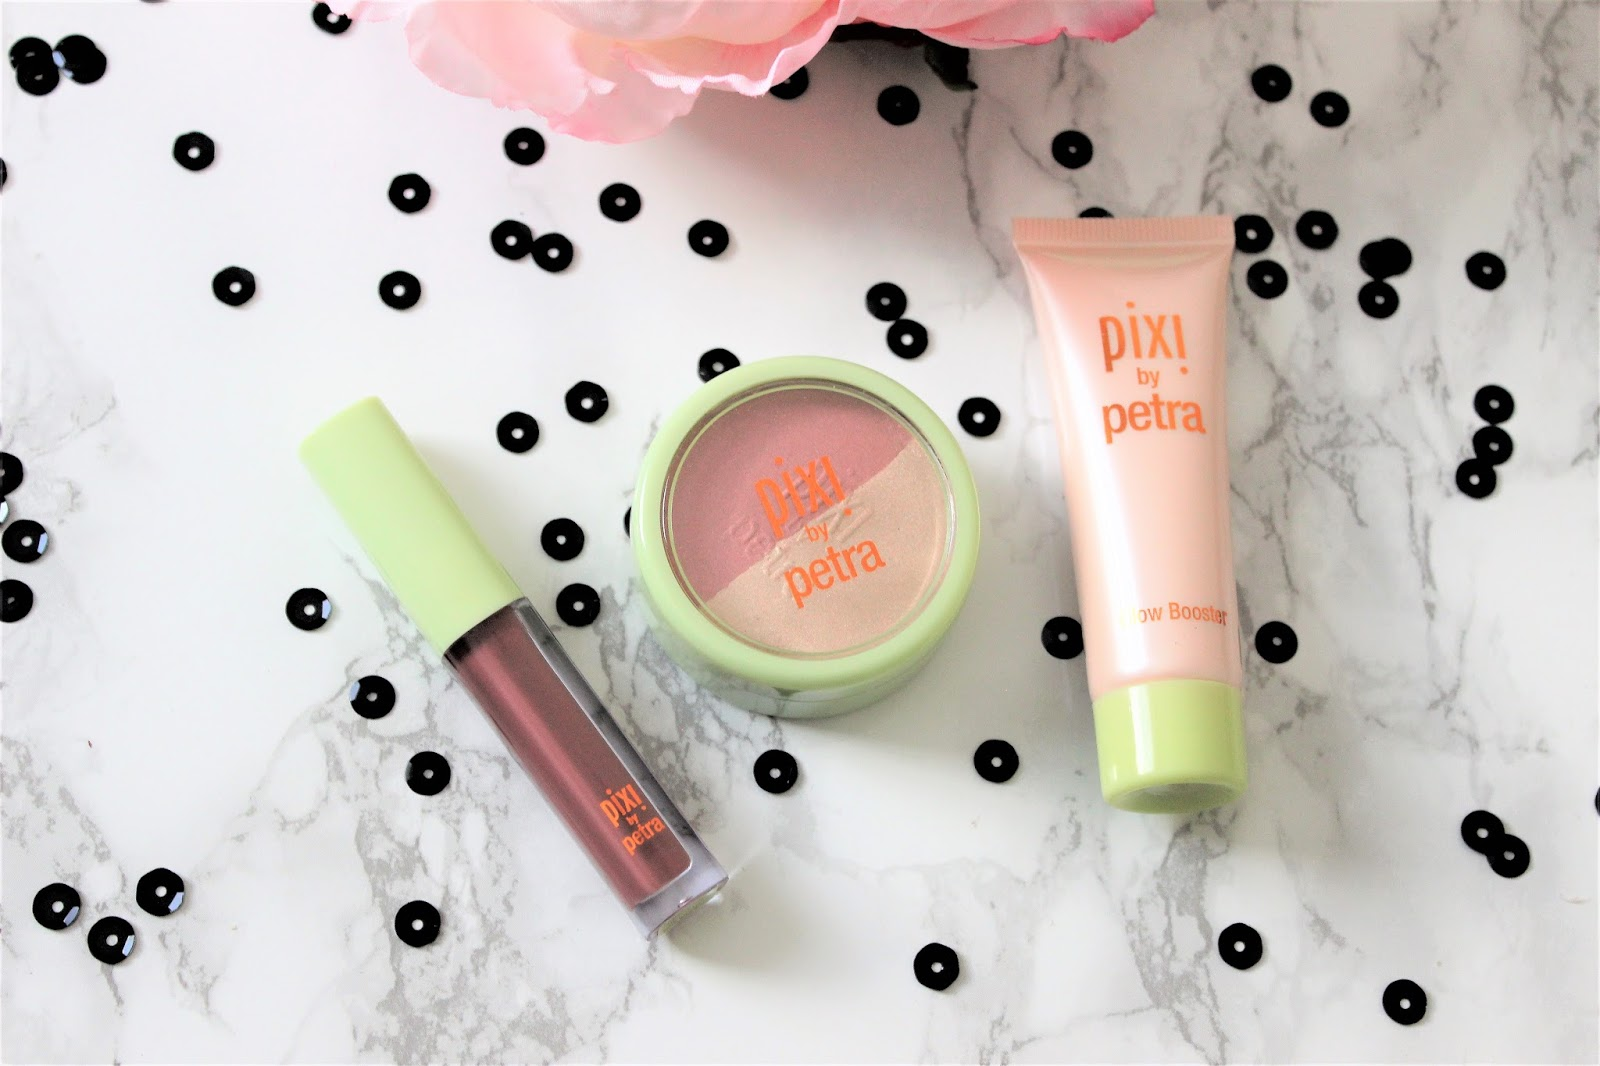 Pixi Beauty Hello Rose Kit Review and Swatches